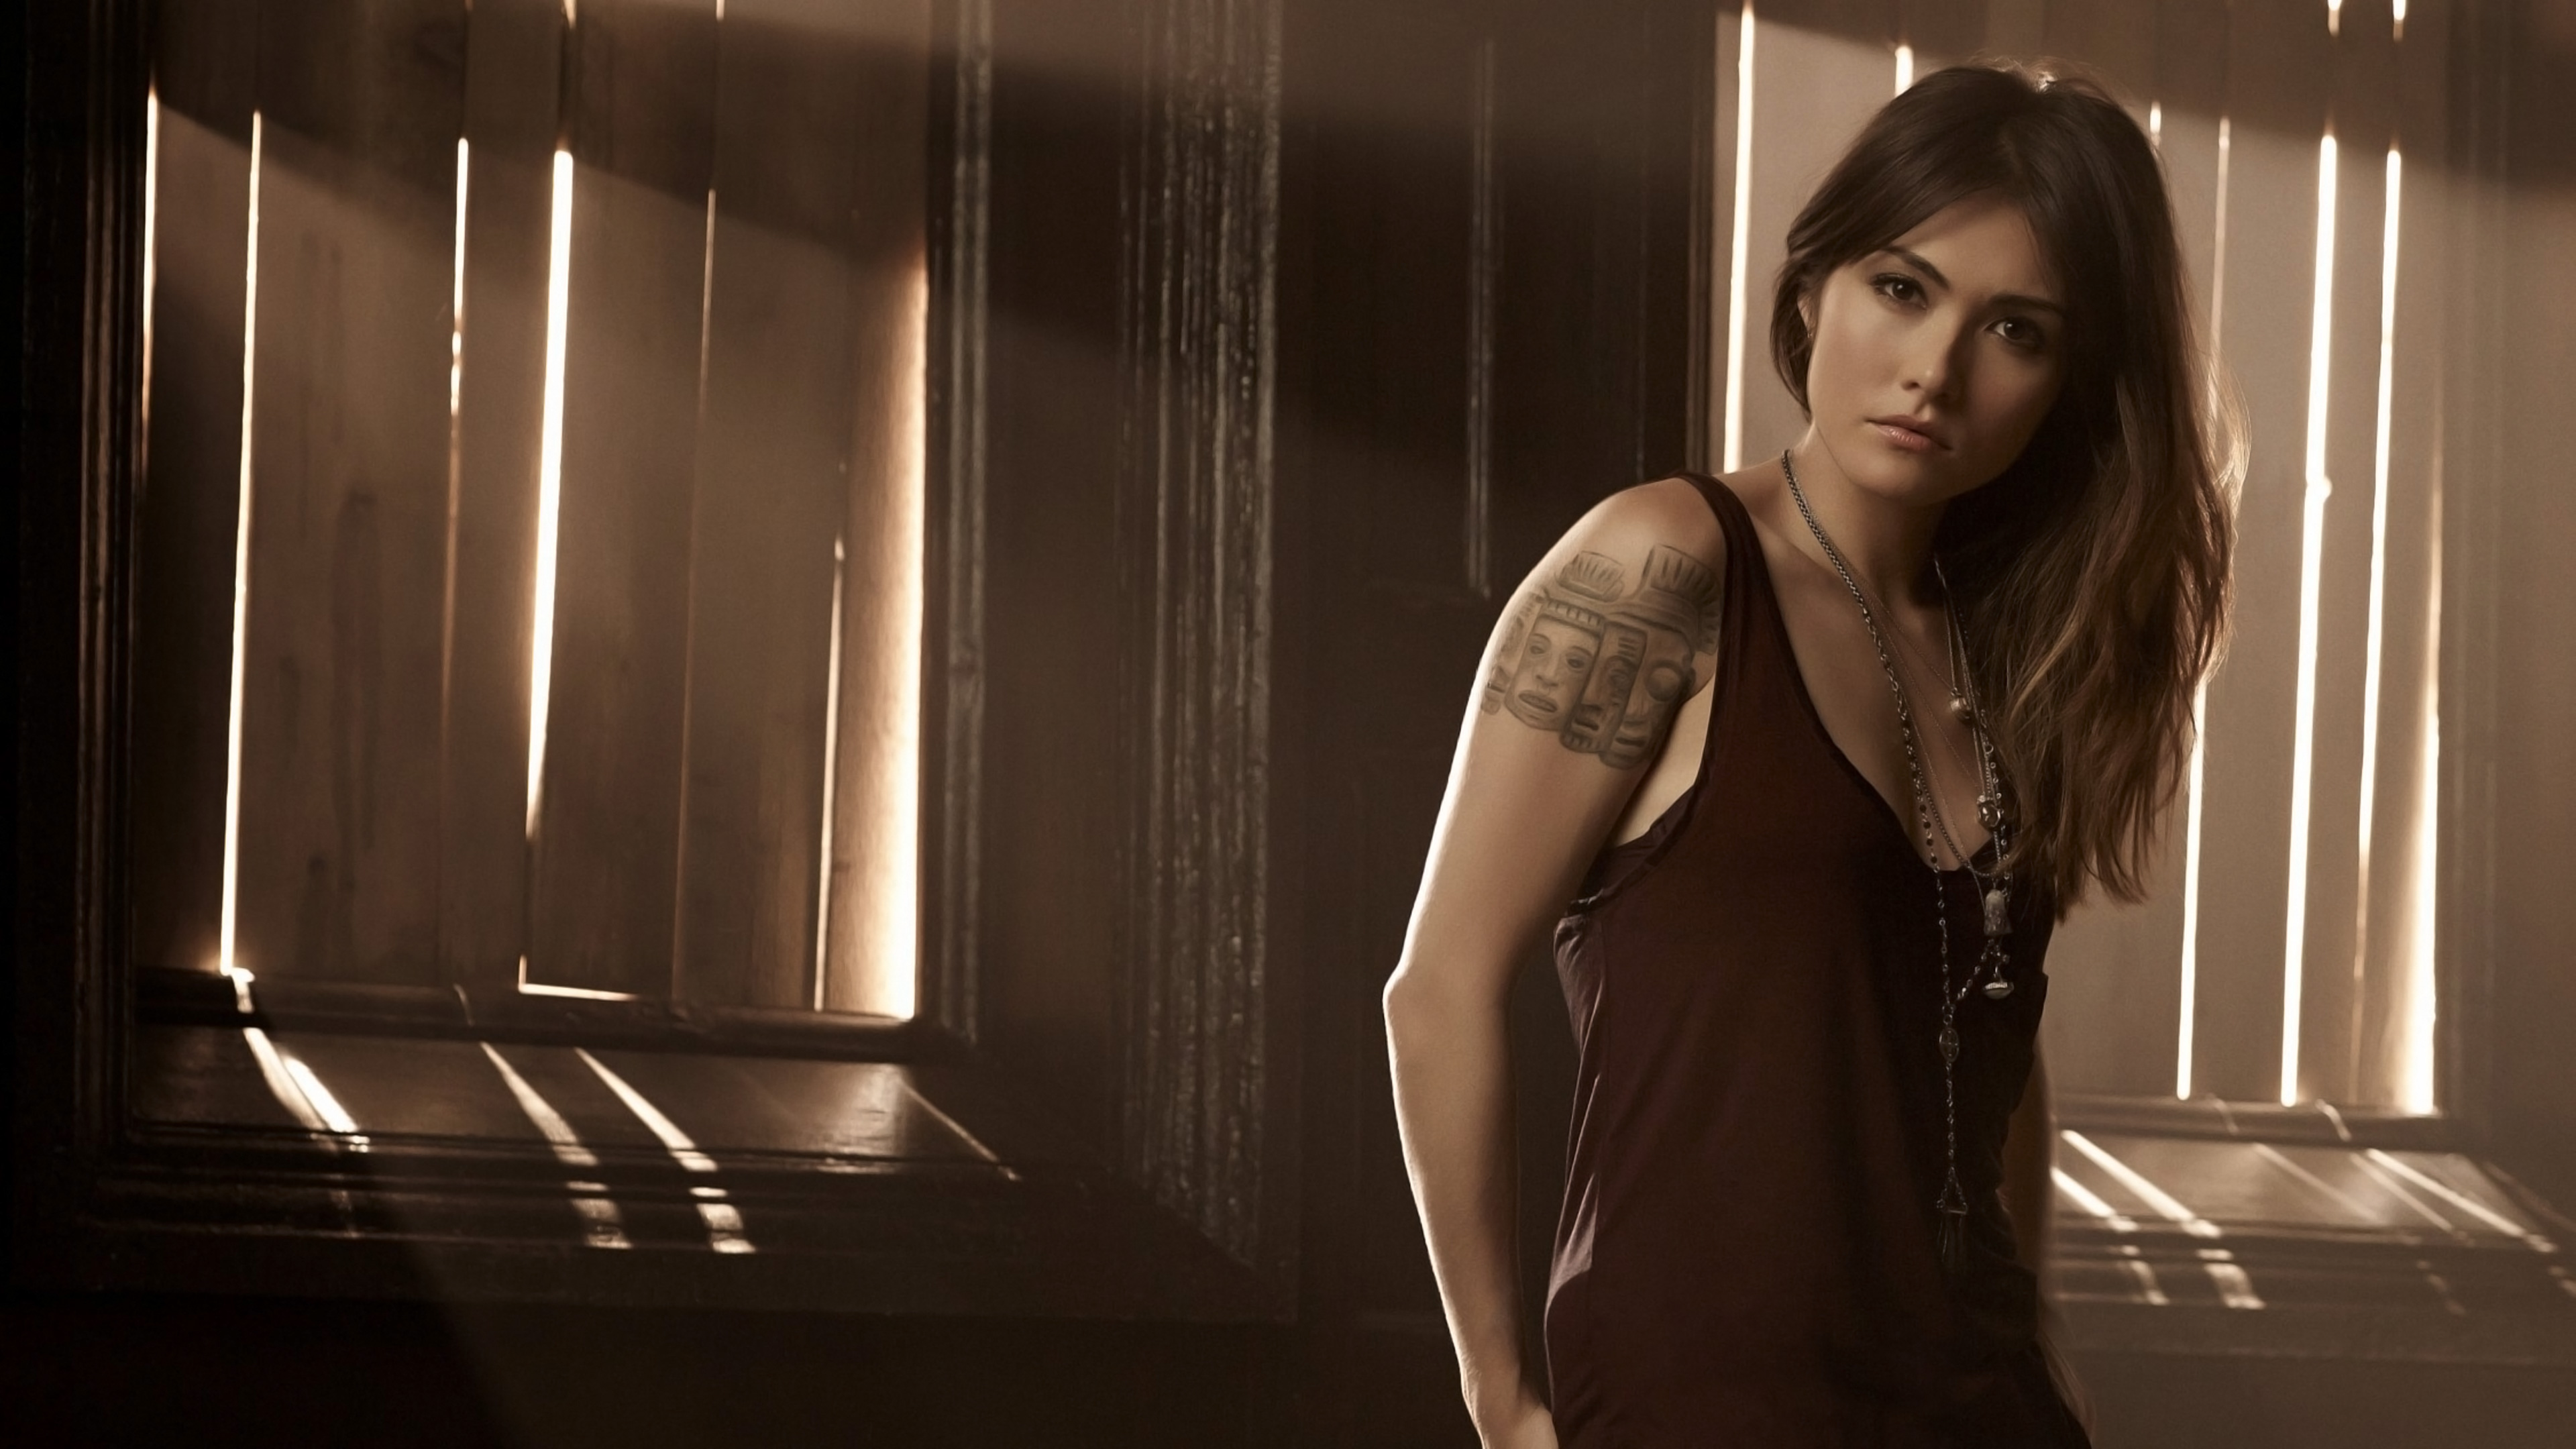 Daniella pineda the originals hd tv shows 4k wallpapers - Tv series wallpaper 4k ...